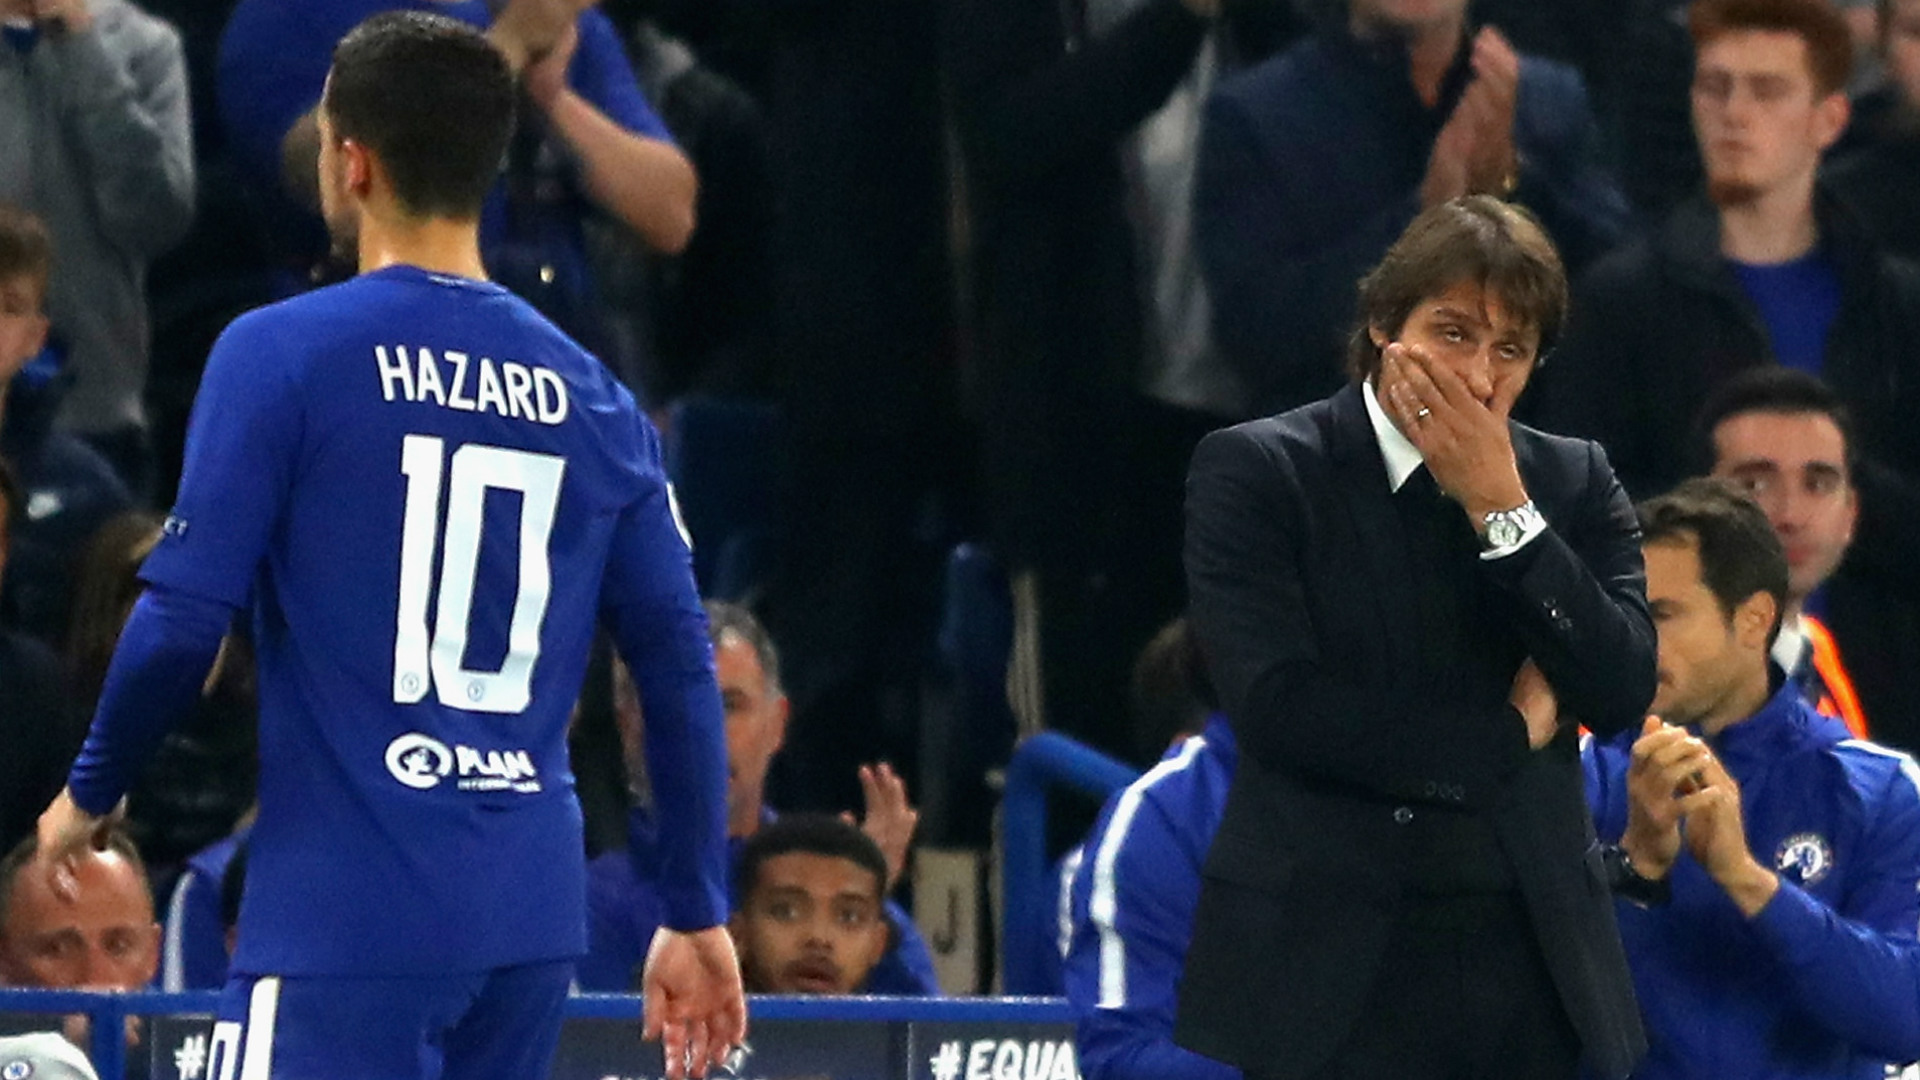 Chelsea players said to be unhappy with Antonio Conte